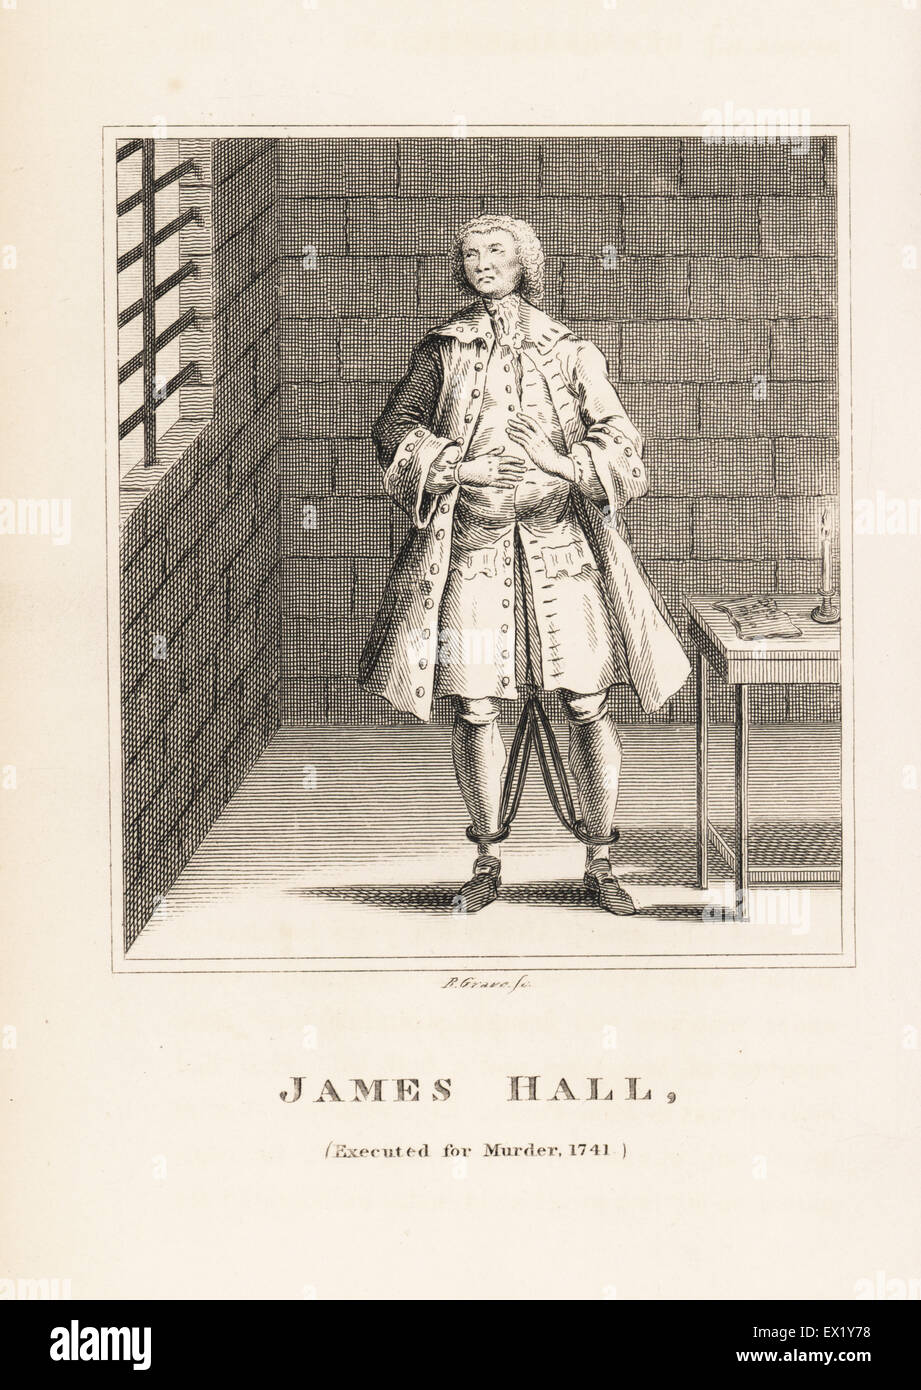 James Hall, executed for the murder of his employer in 1741. In shackles in his prison cell. Copperplate engraving - Stock Image